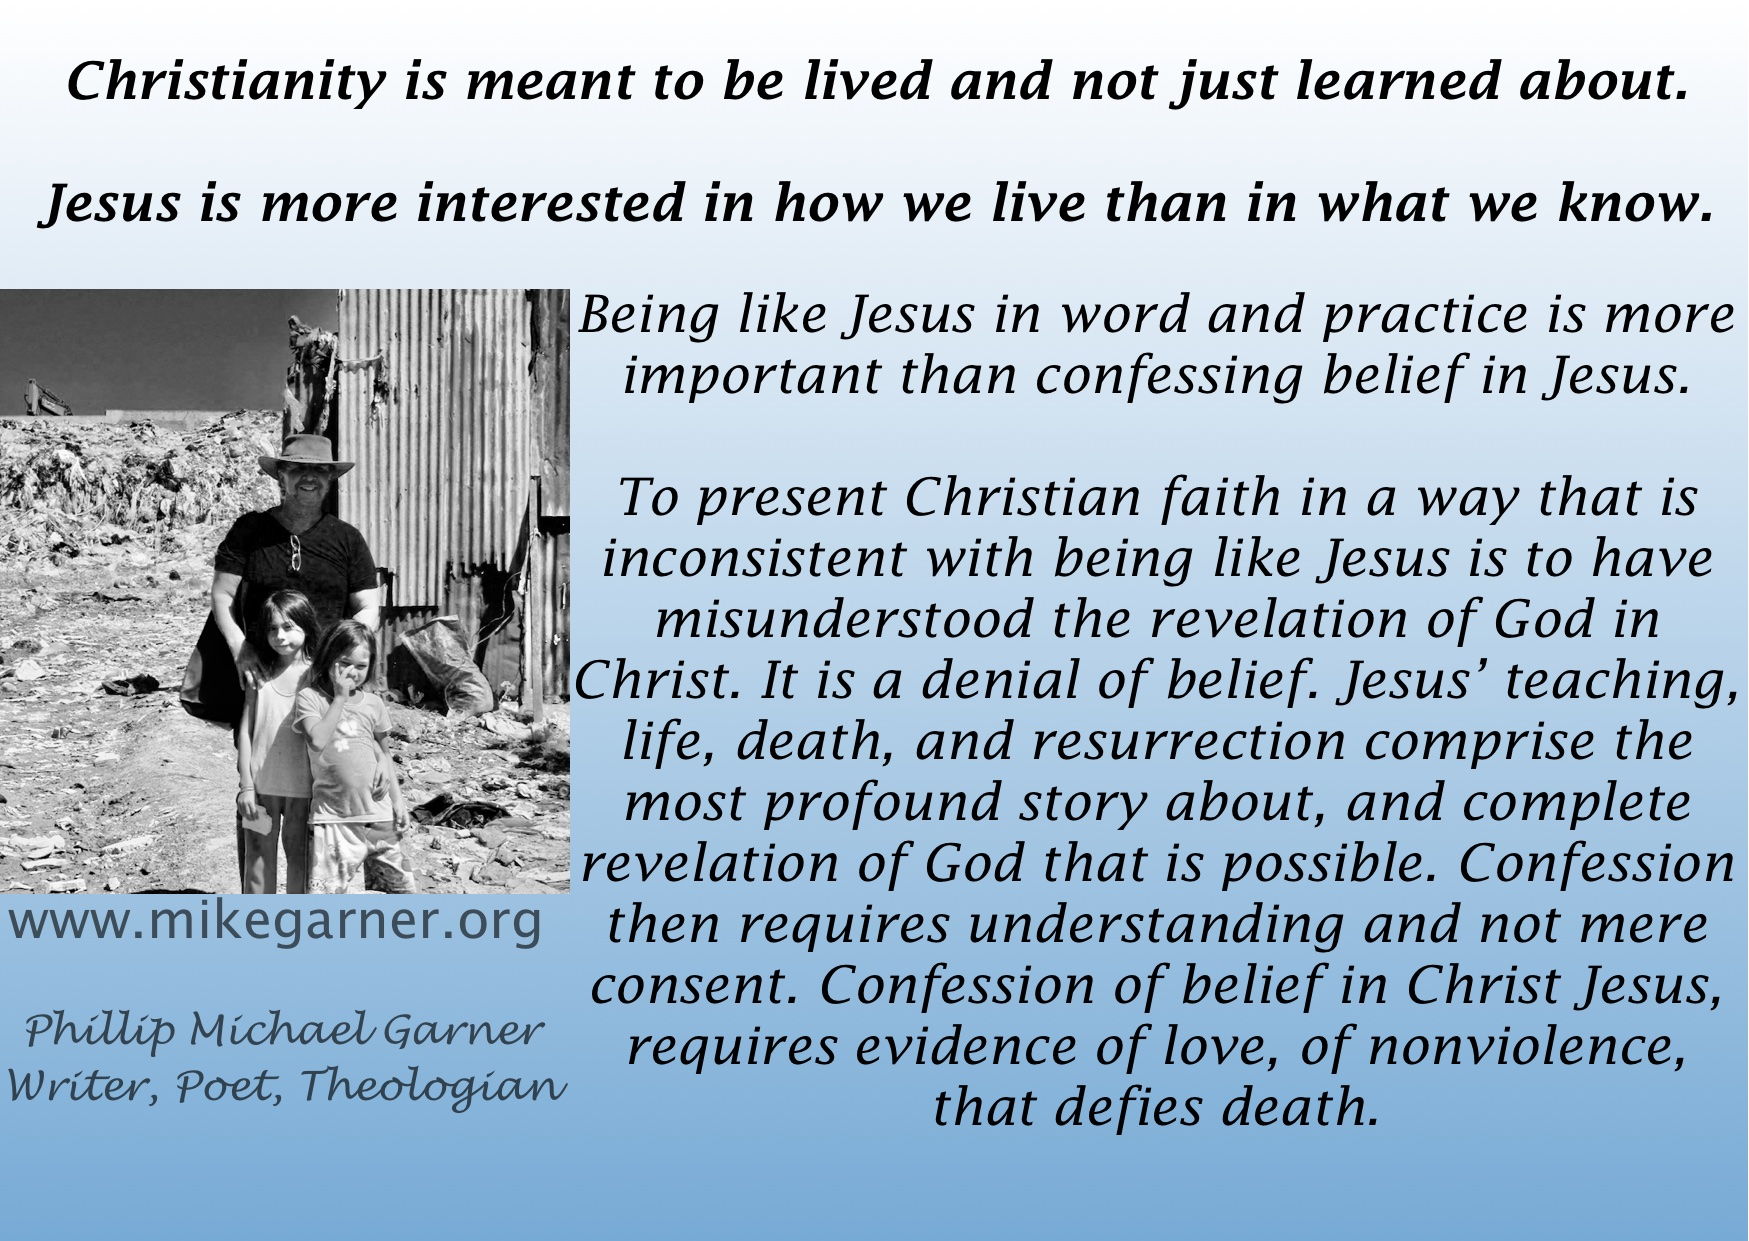 Christianity meant to be lived.jpg